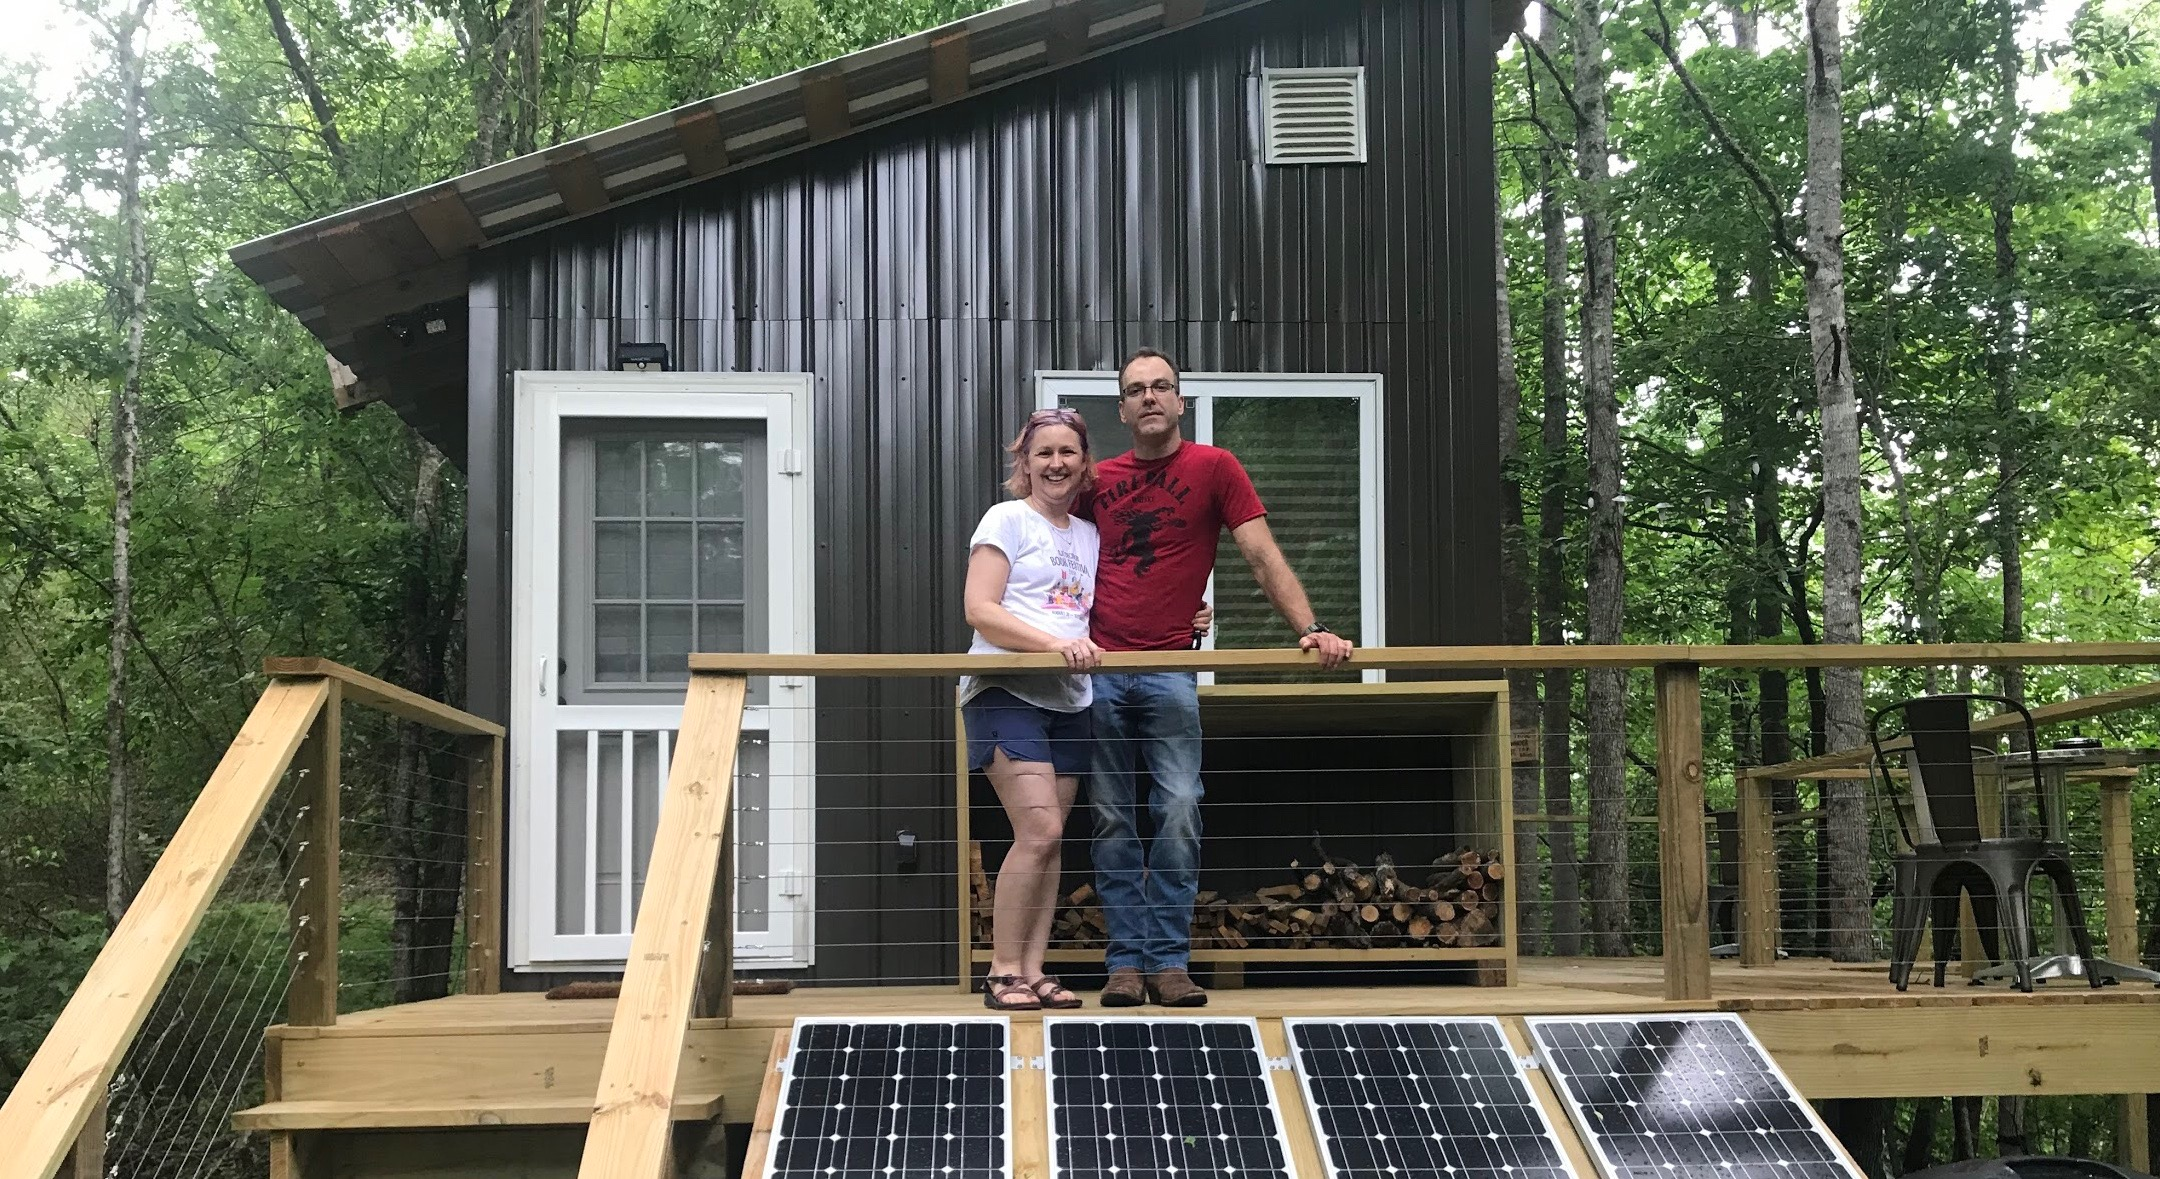 Escape to this tiny home eco-retreat on 85 acres in North Central Alabama